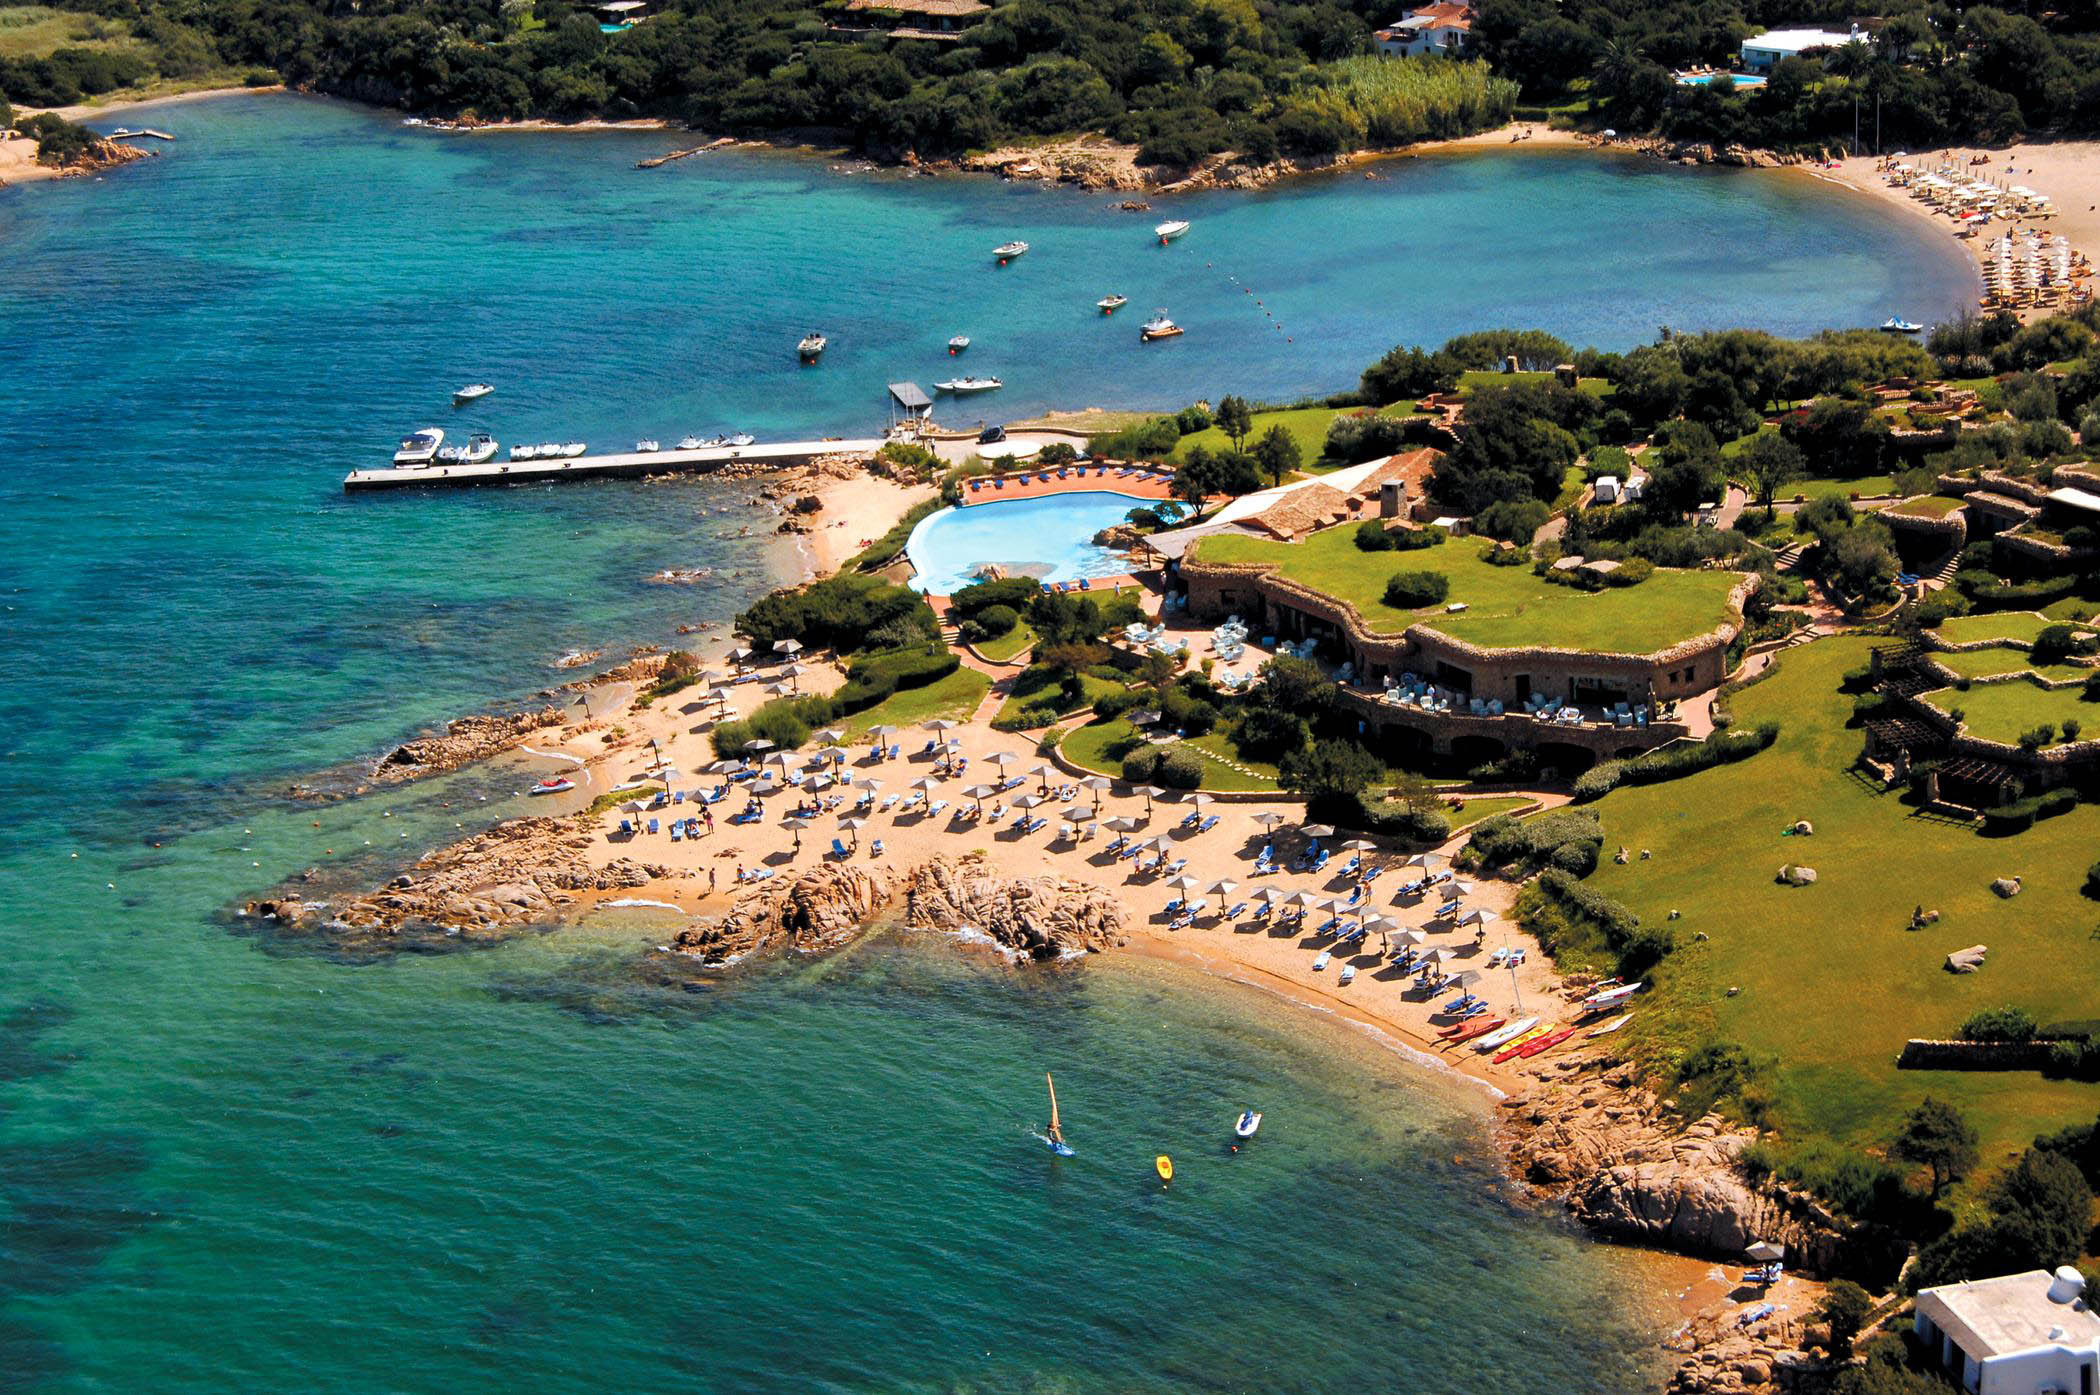 world___italy_the_resort_of_costa_smeralda__italy_064850_